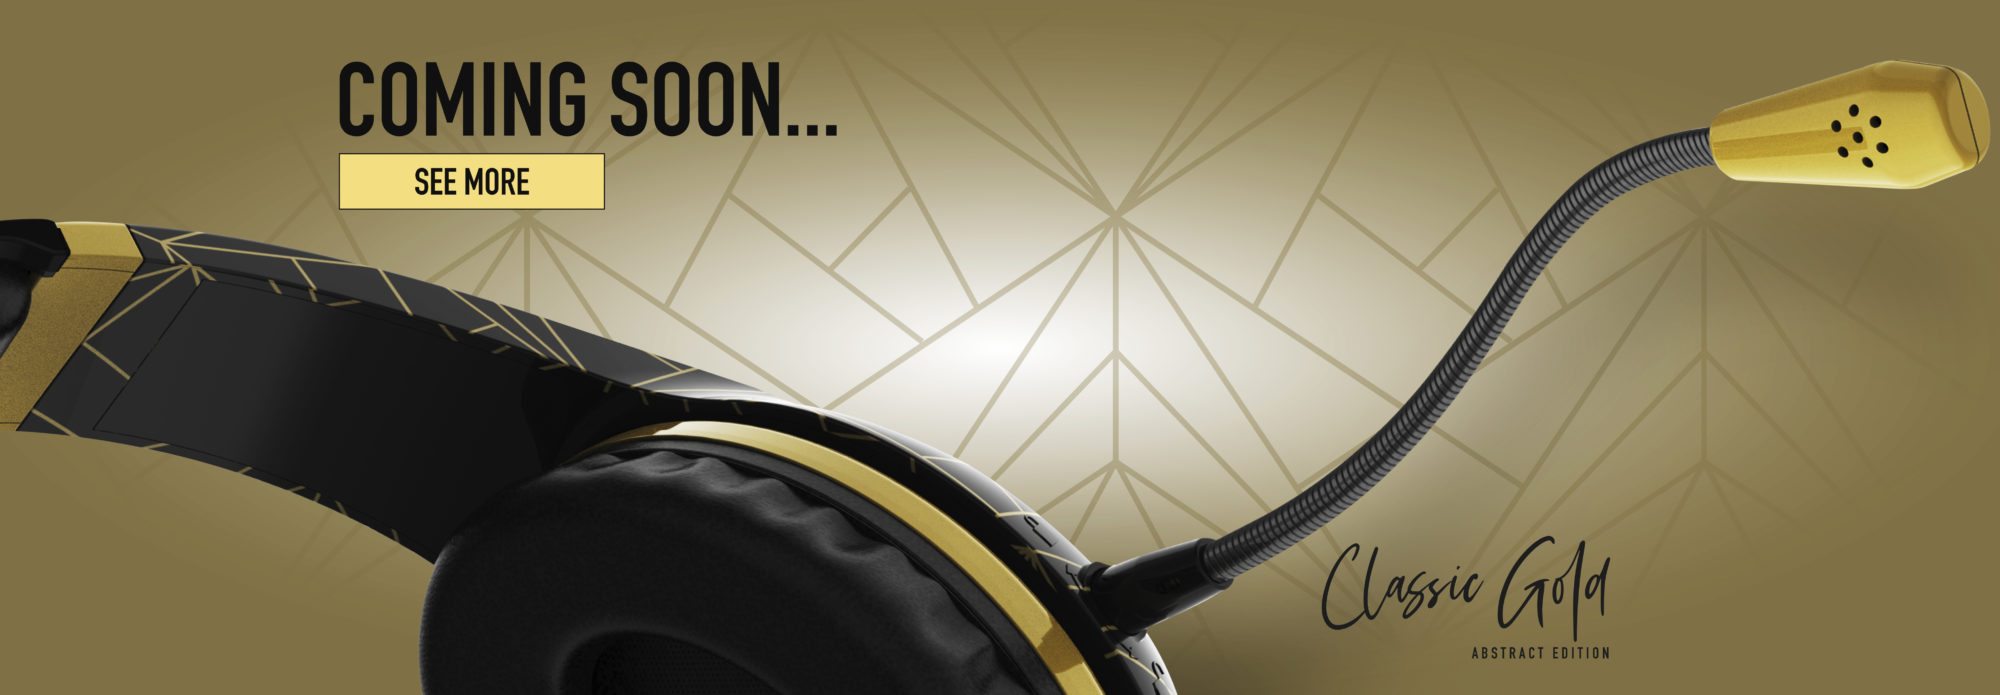 STEALTH Classic Gold ABSTRACT EDITION. Coming Soon…